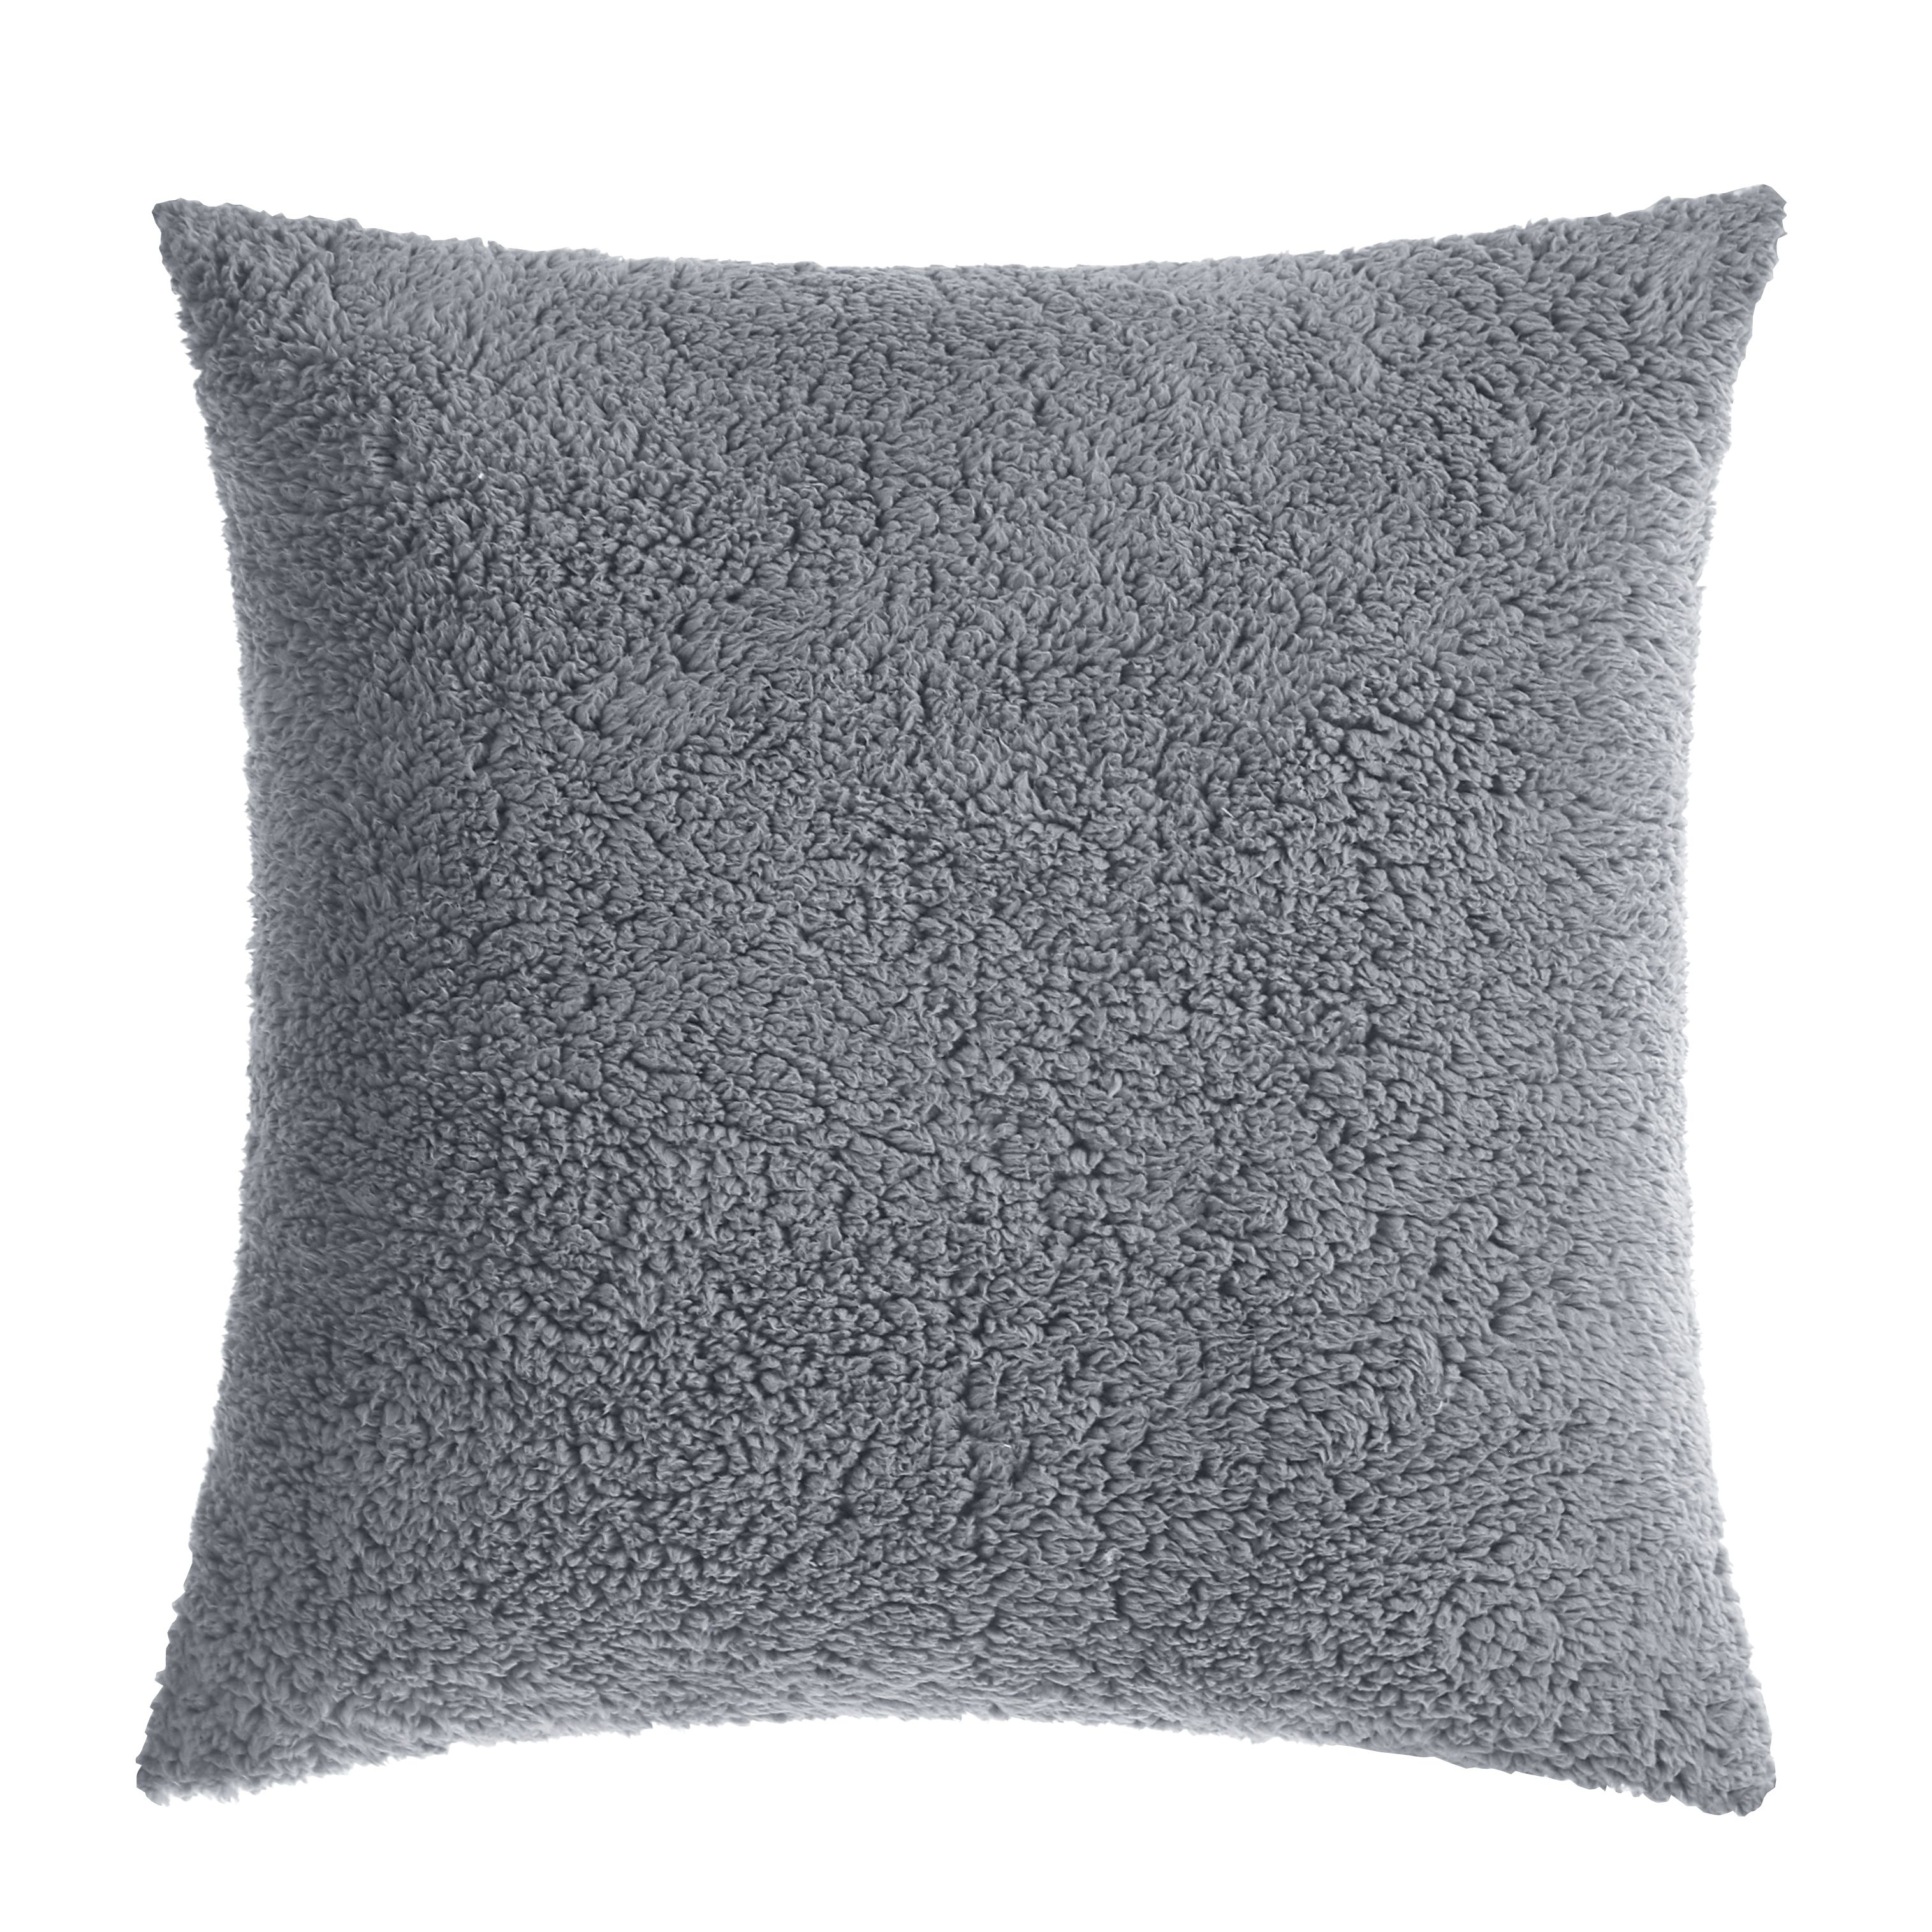 Pin On Oversized Throw Pillows